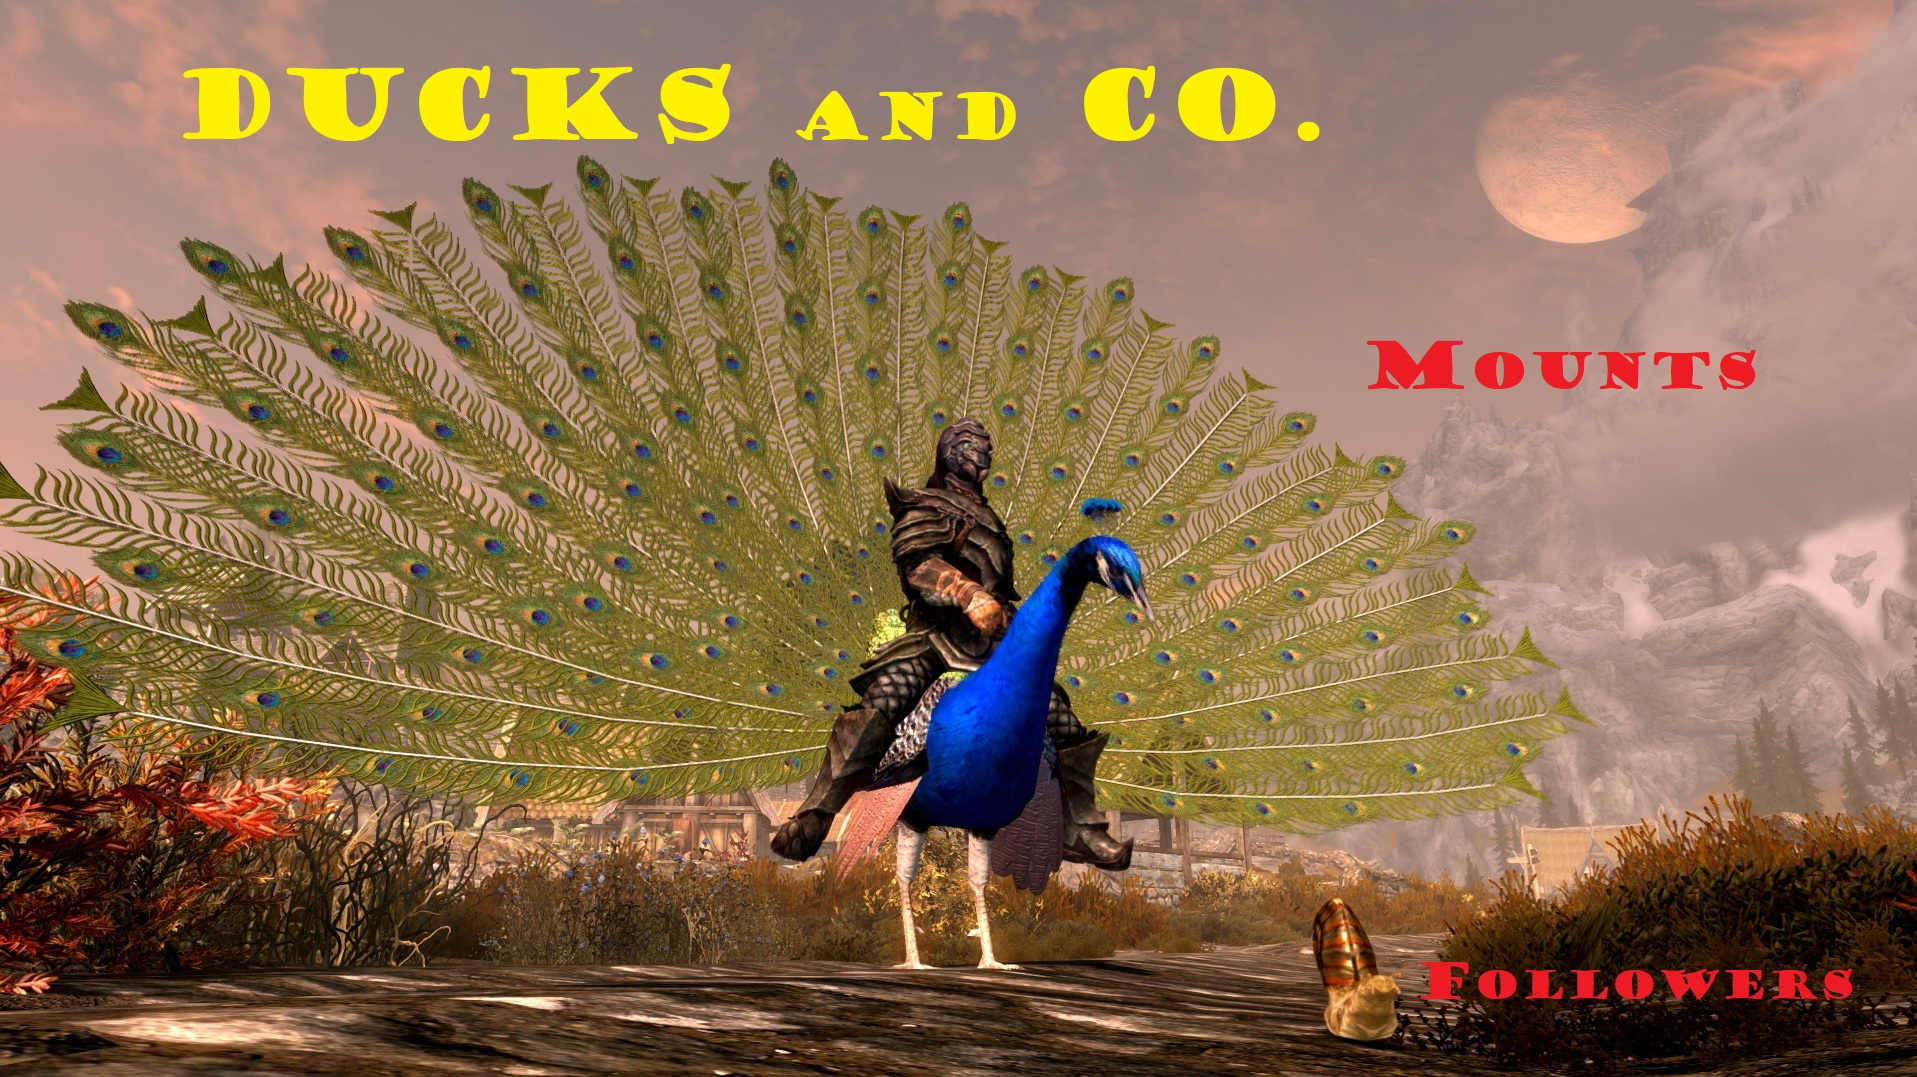 Ducks and Co. 2